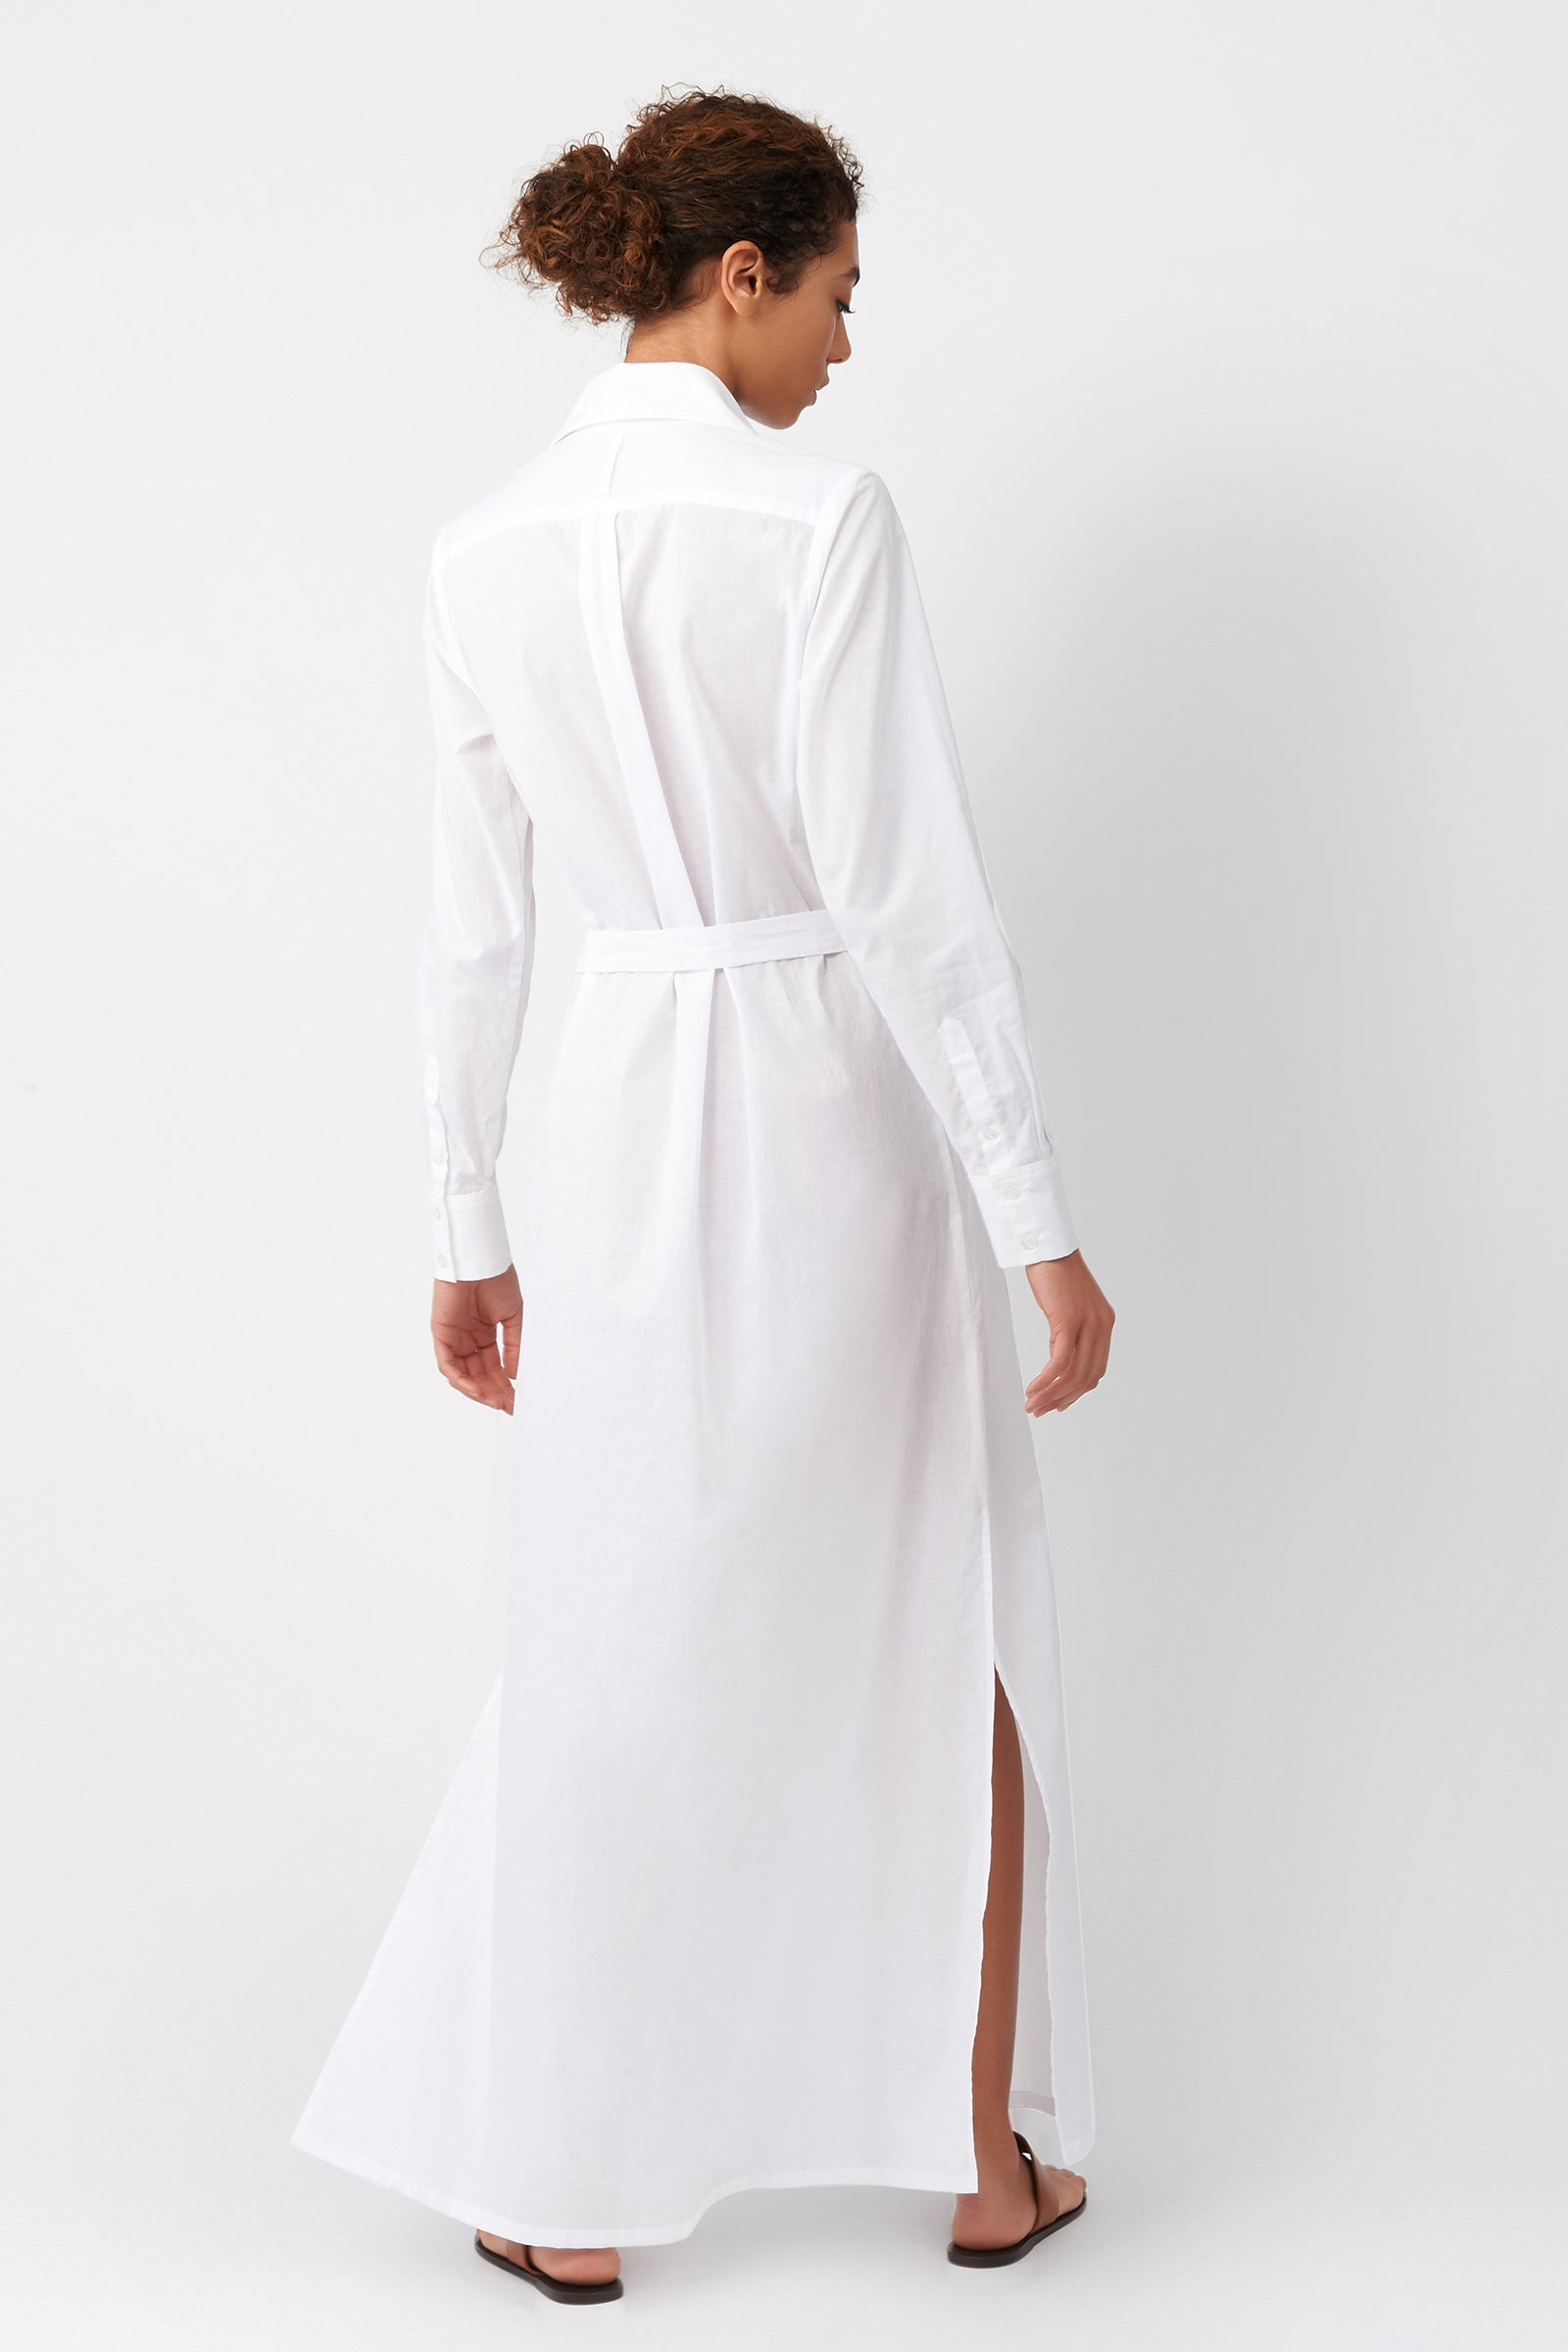 Kal Rieman Voile Maxi Shirt Dress in White on Model Full Back View